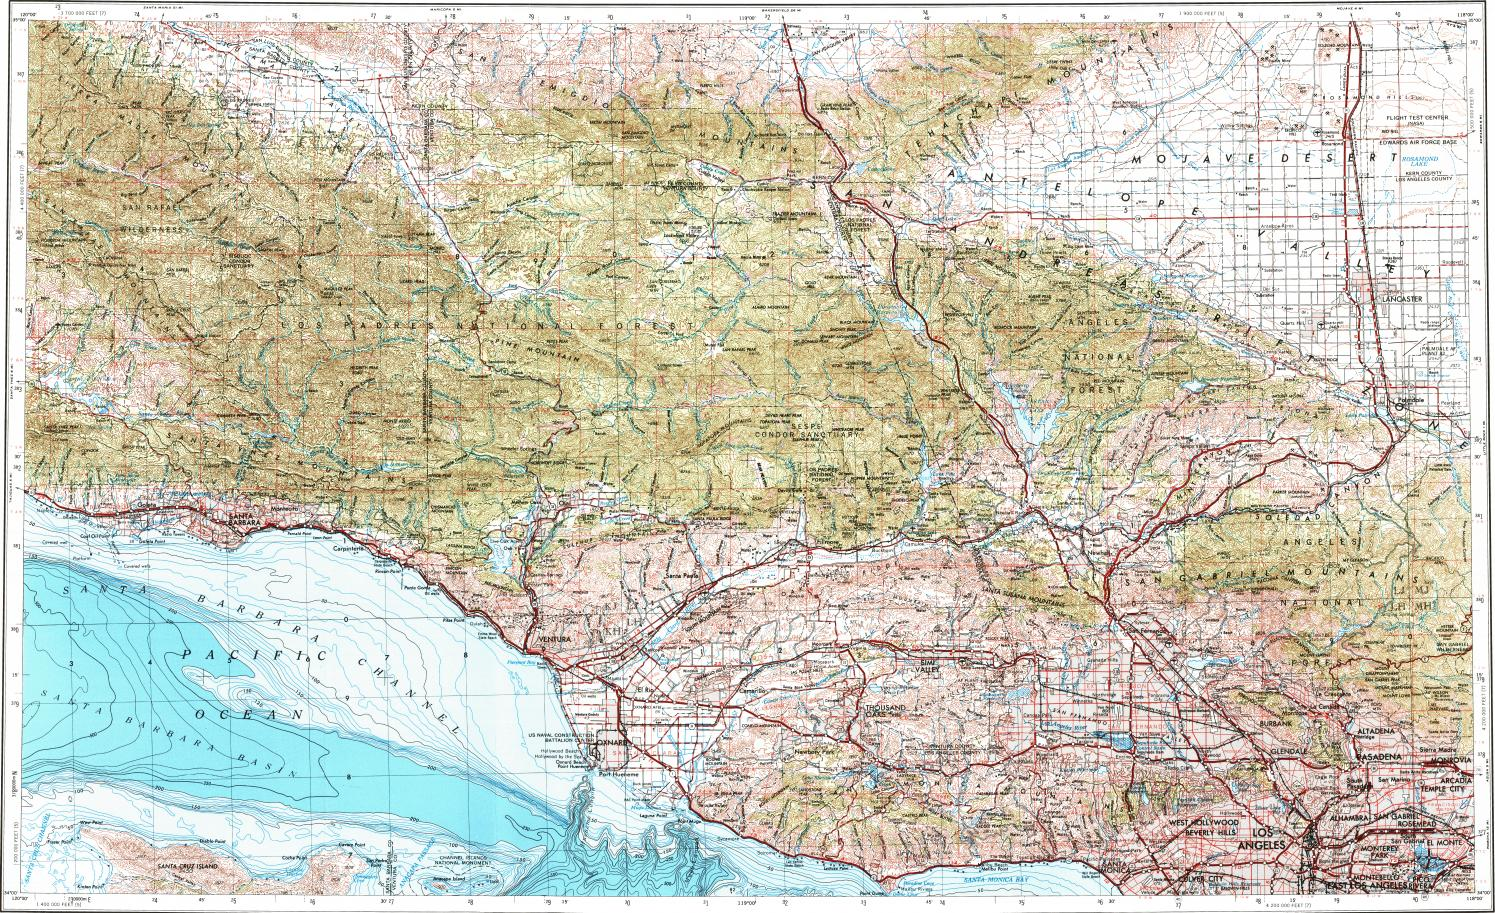 Download Topographic Map In Area Of Los Angeles Oxnard Santa - Los angeles topographic map